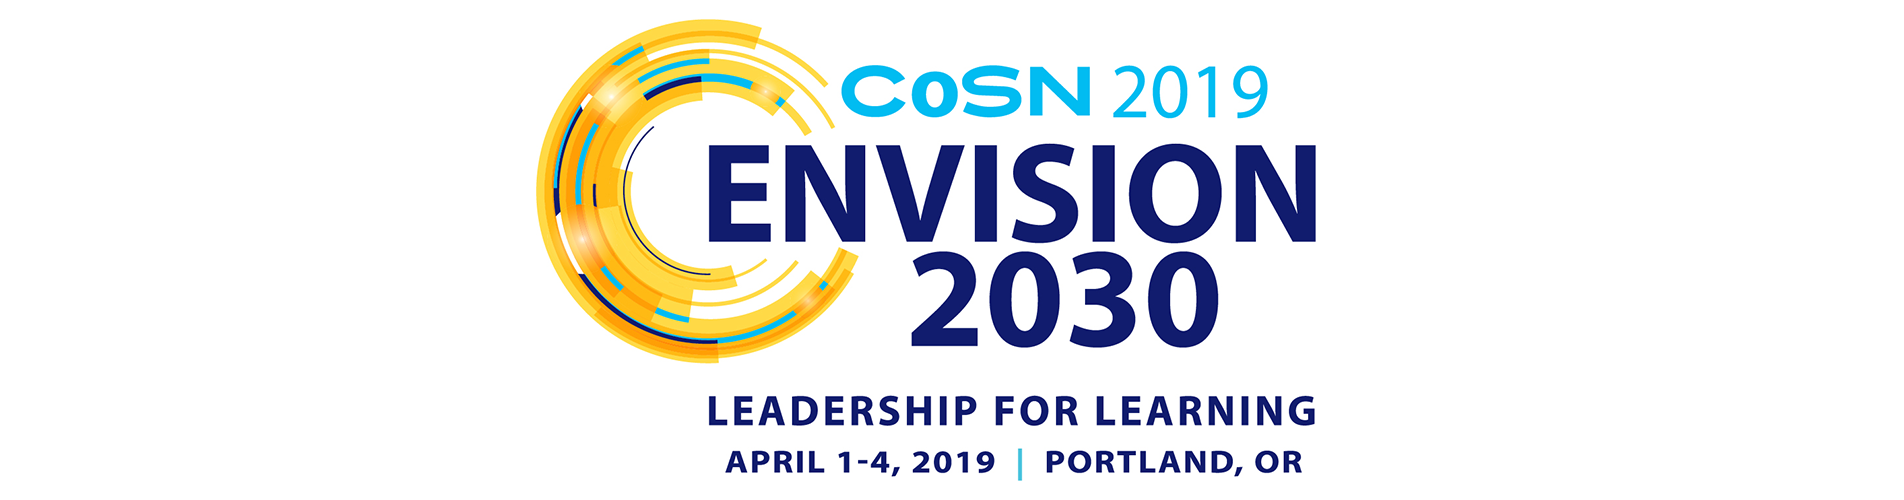 VEDAMO Virtual Classroom CoSN annual conference 2019